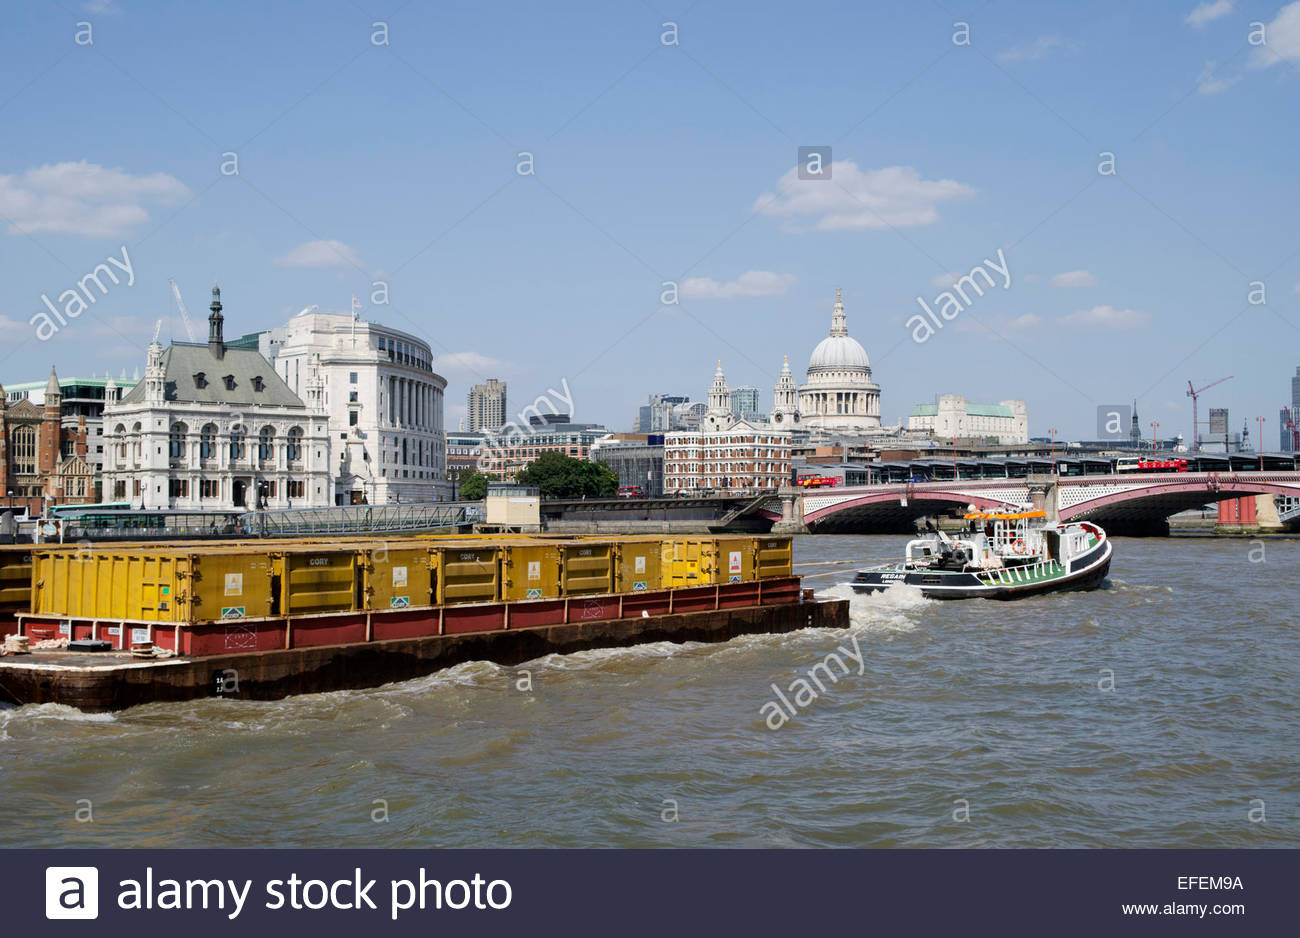 Tug pulling a loaded cargo lighter on the River Thames, approaching Blackfriars Bridge, and with St Pauls Cathedral - Stock Image